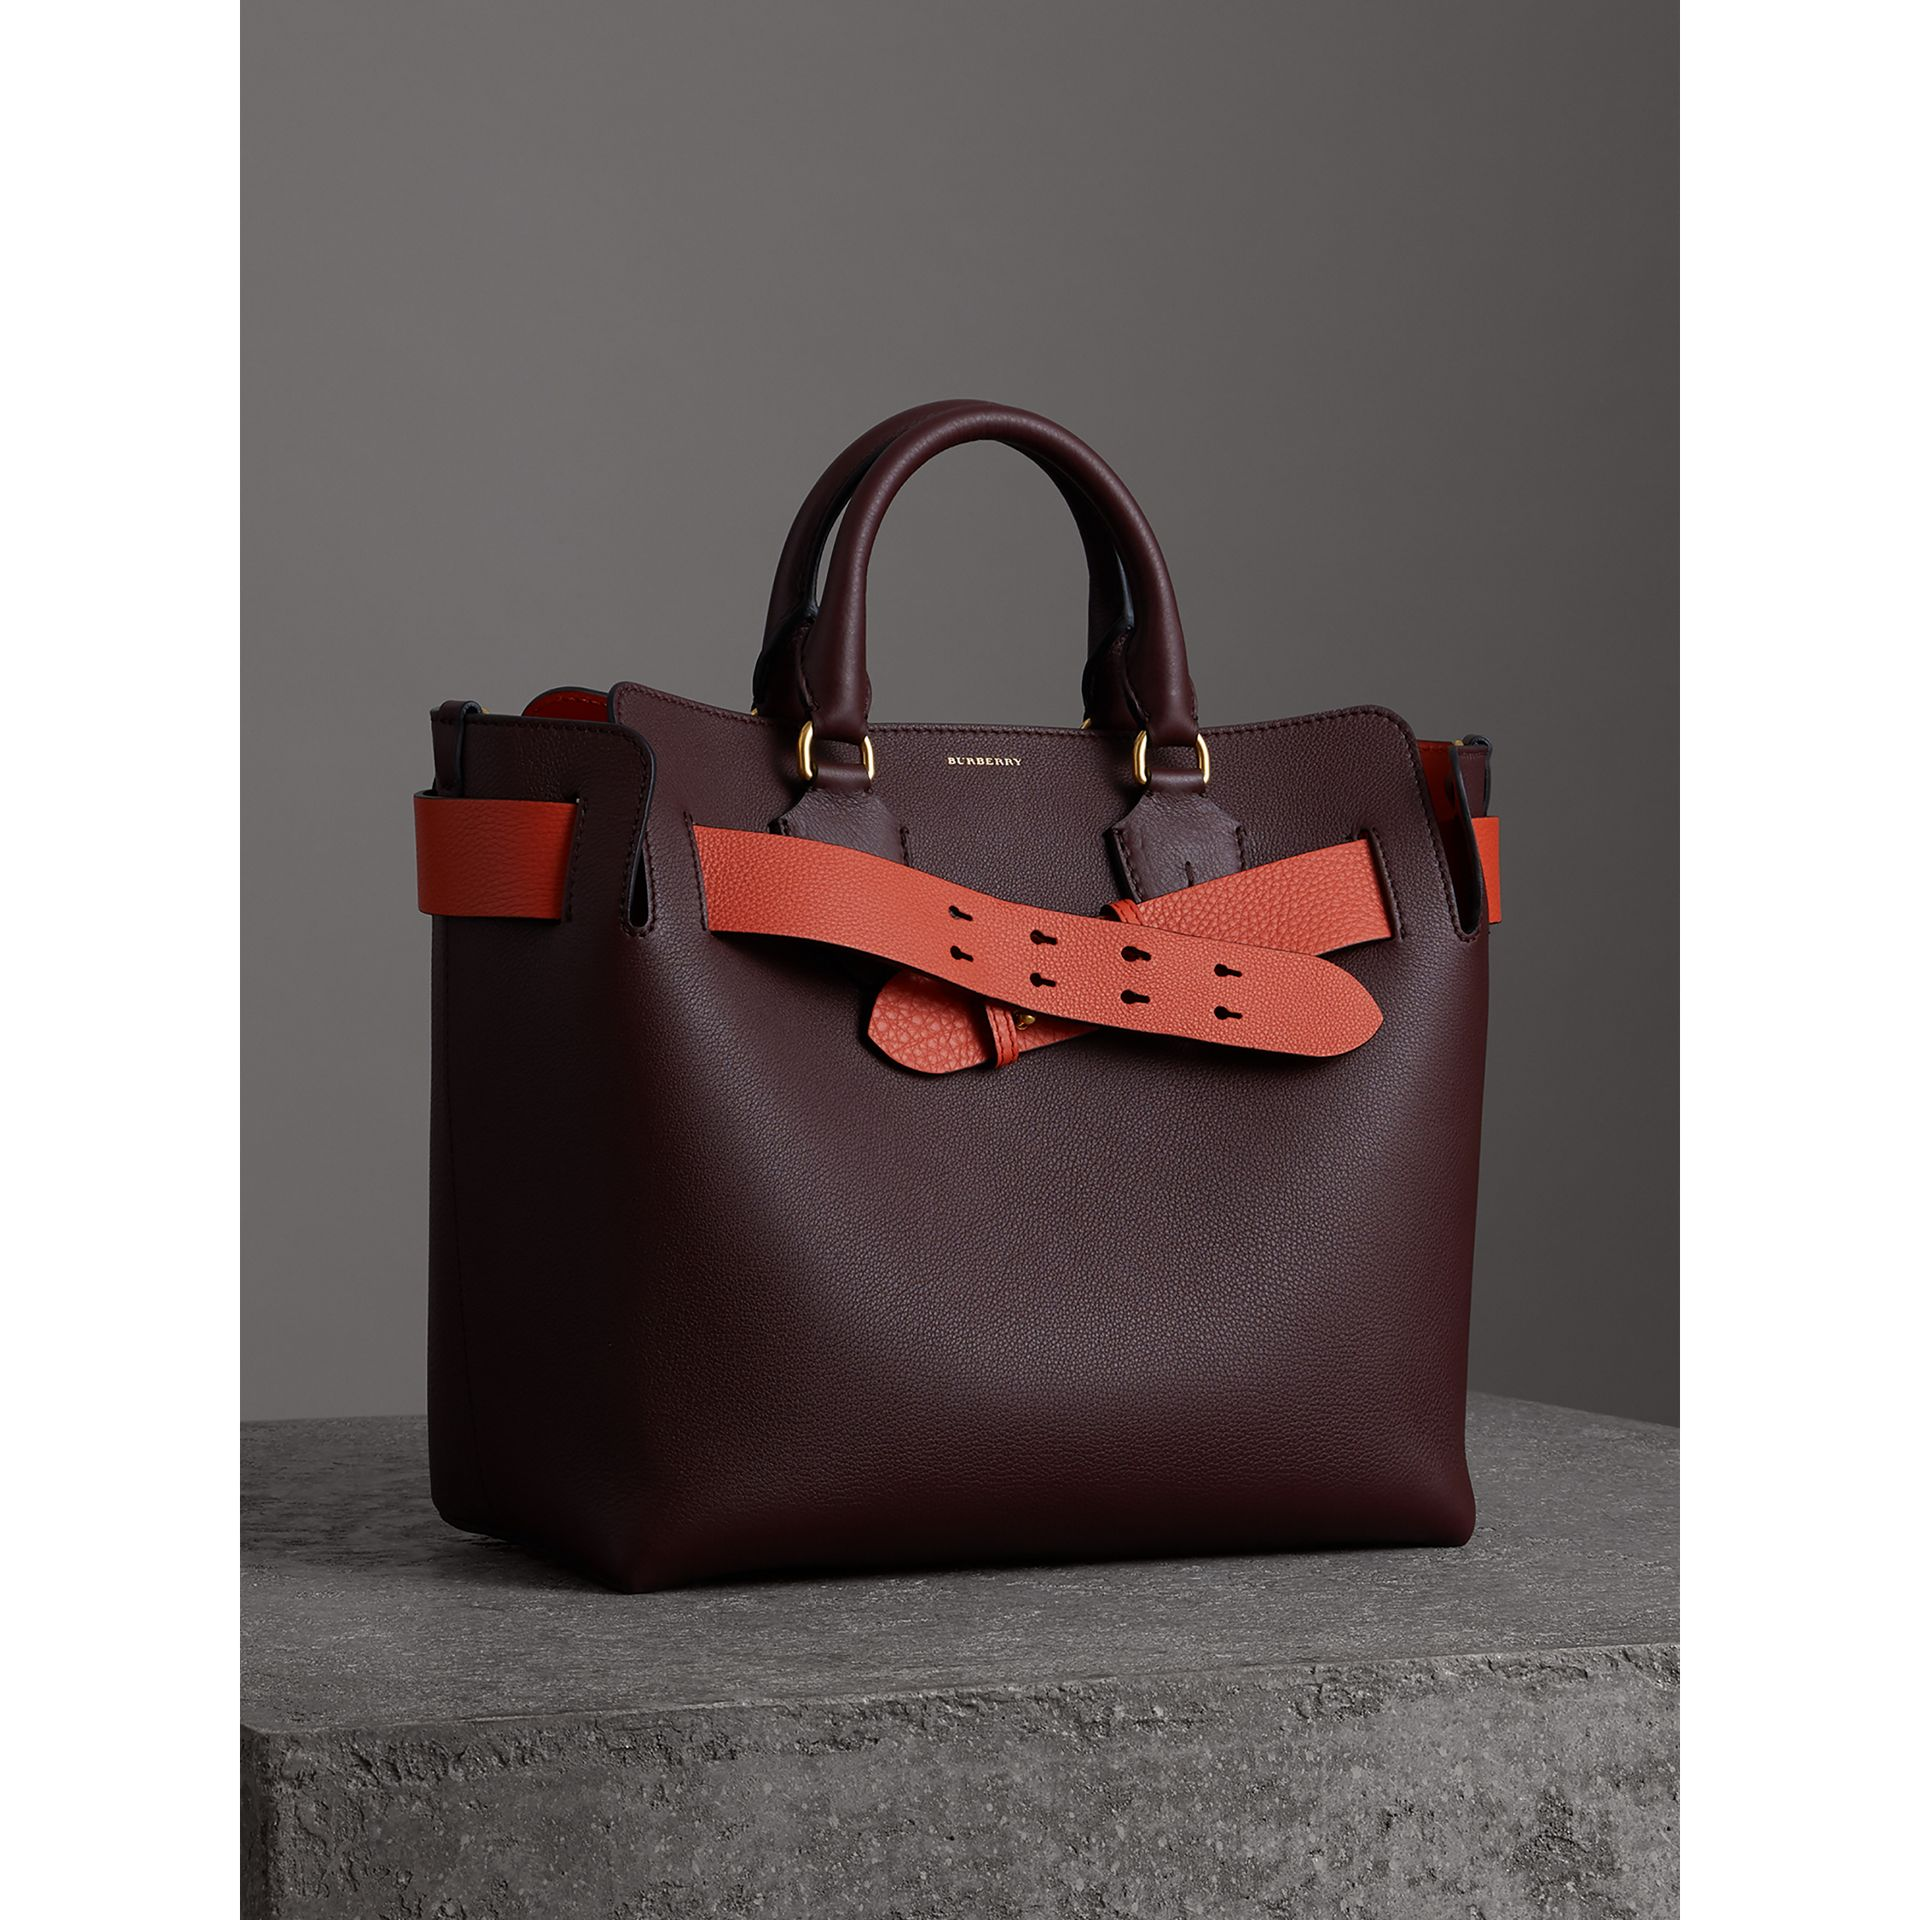 Sac The Belt moyen en cuir (Bordeaux Intense) - Femme | Burberry Canada - photo de la galerie 6